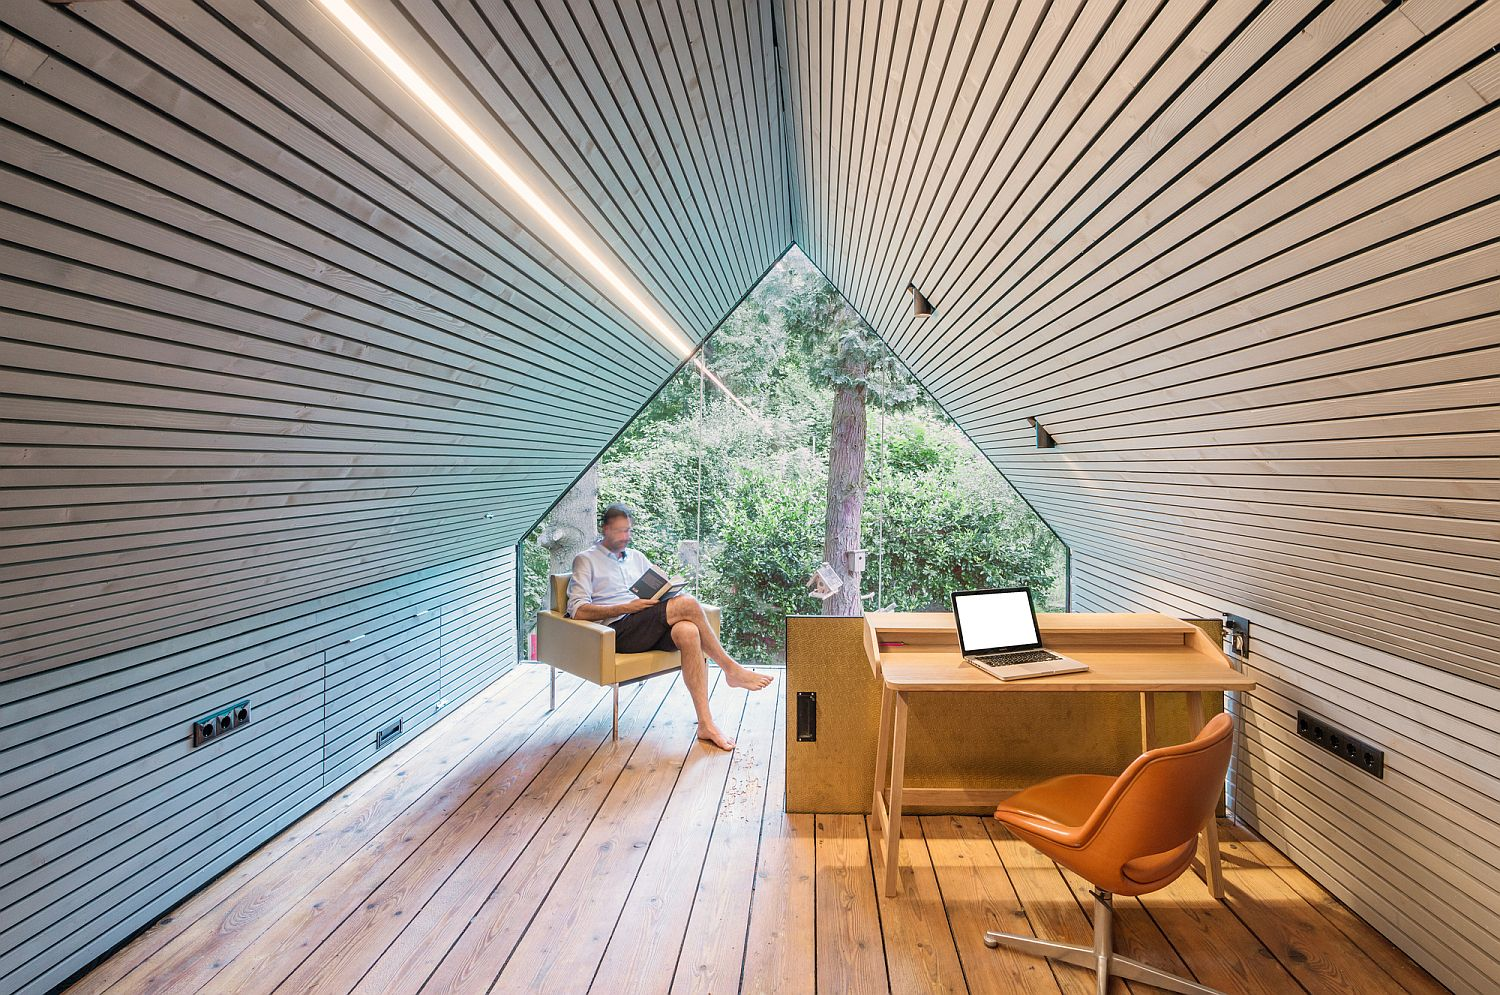 Minimal attic getaway with a workdesk and chair